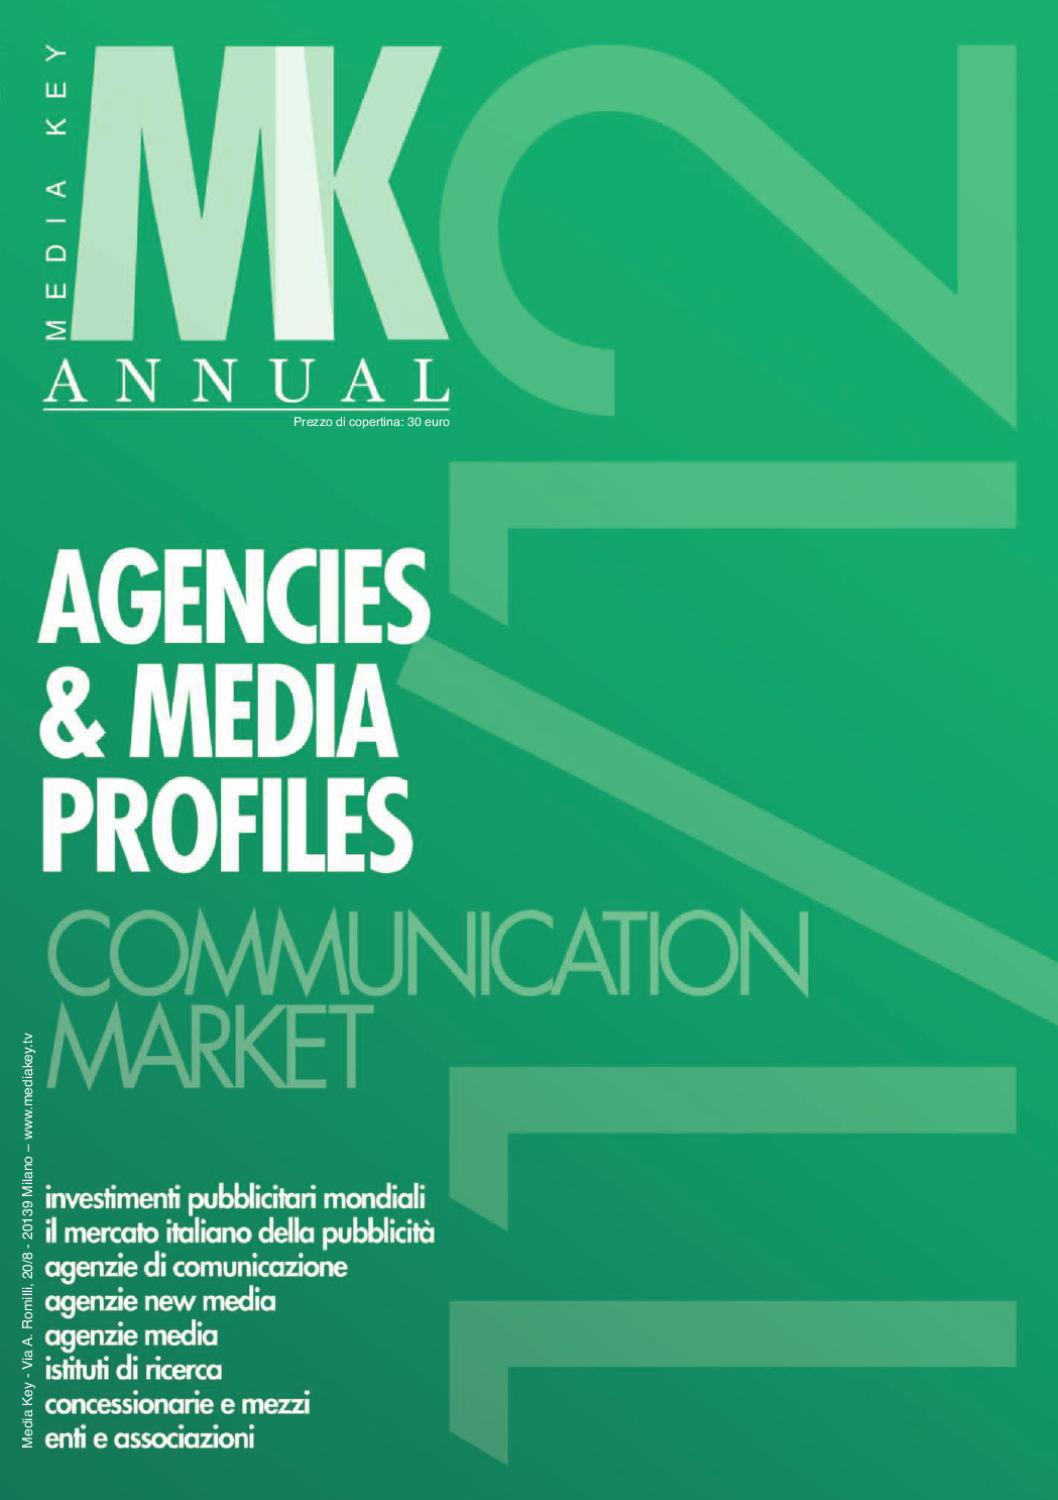 Media Key Annual 2011 by Media Key Srl - issuu dc6c33693e8